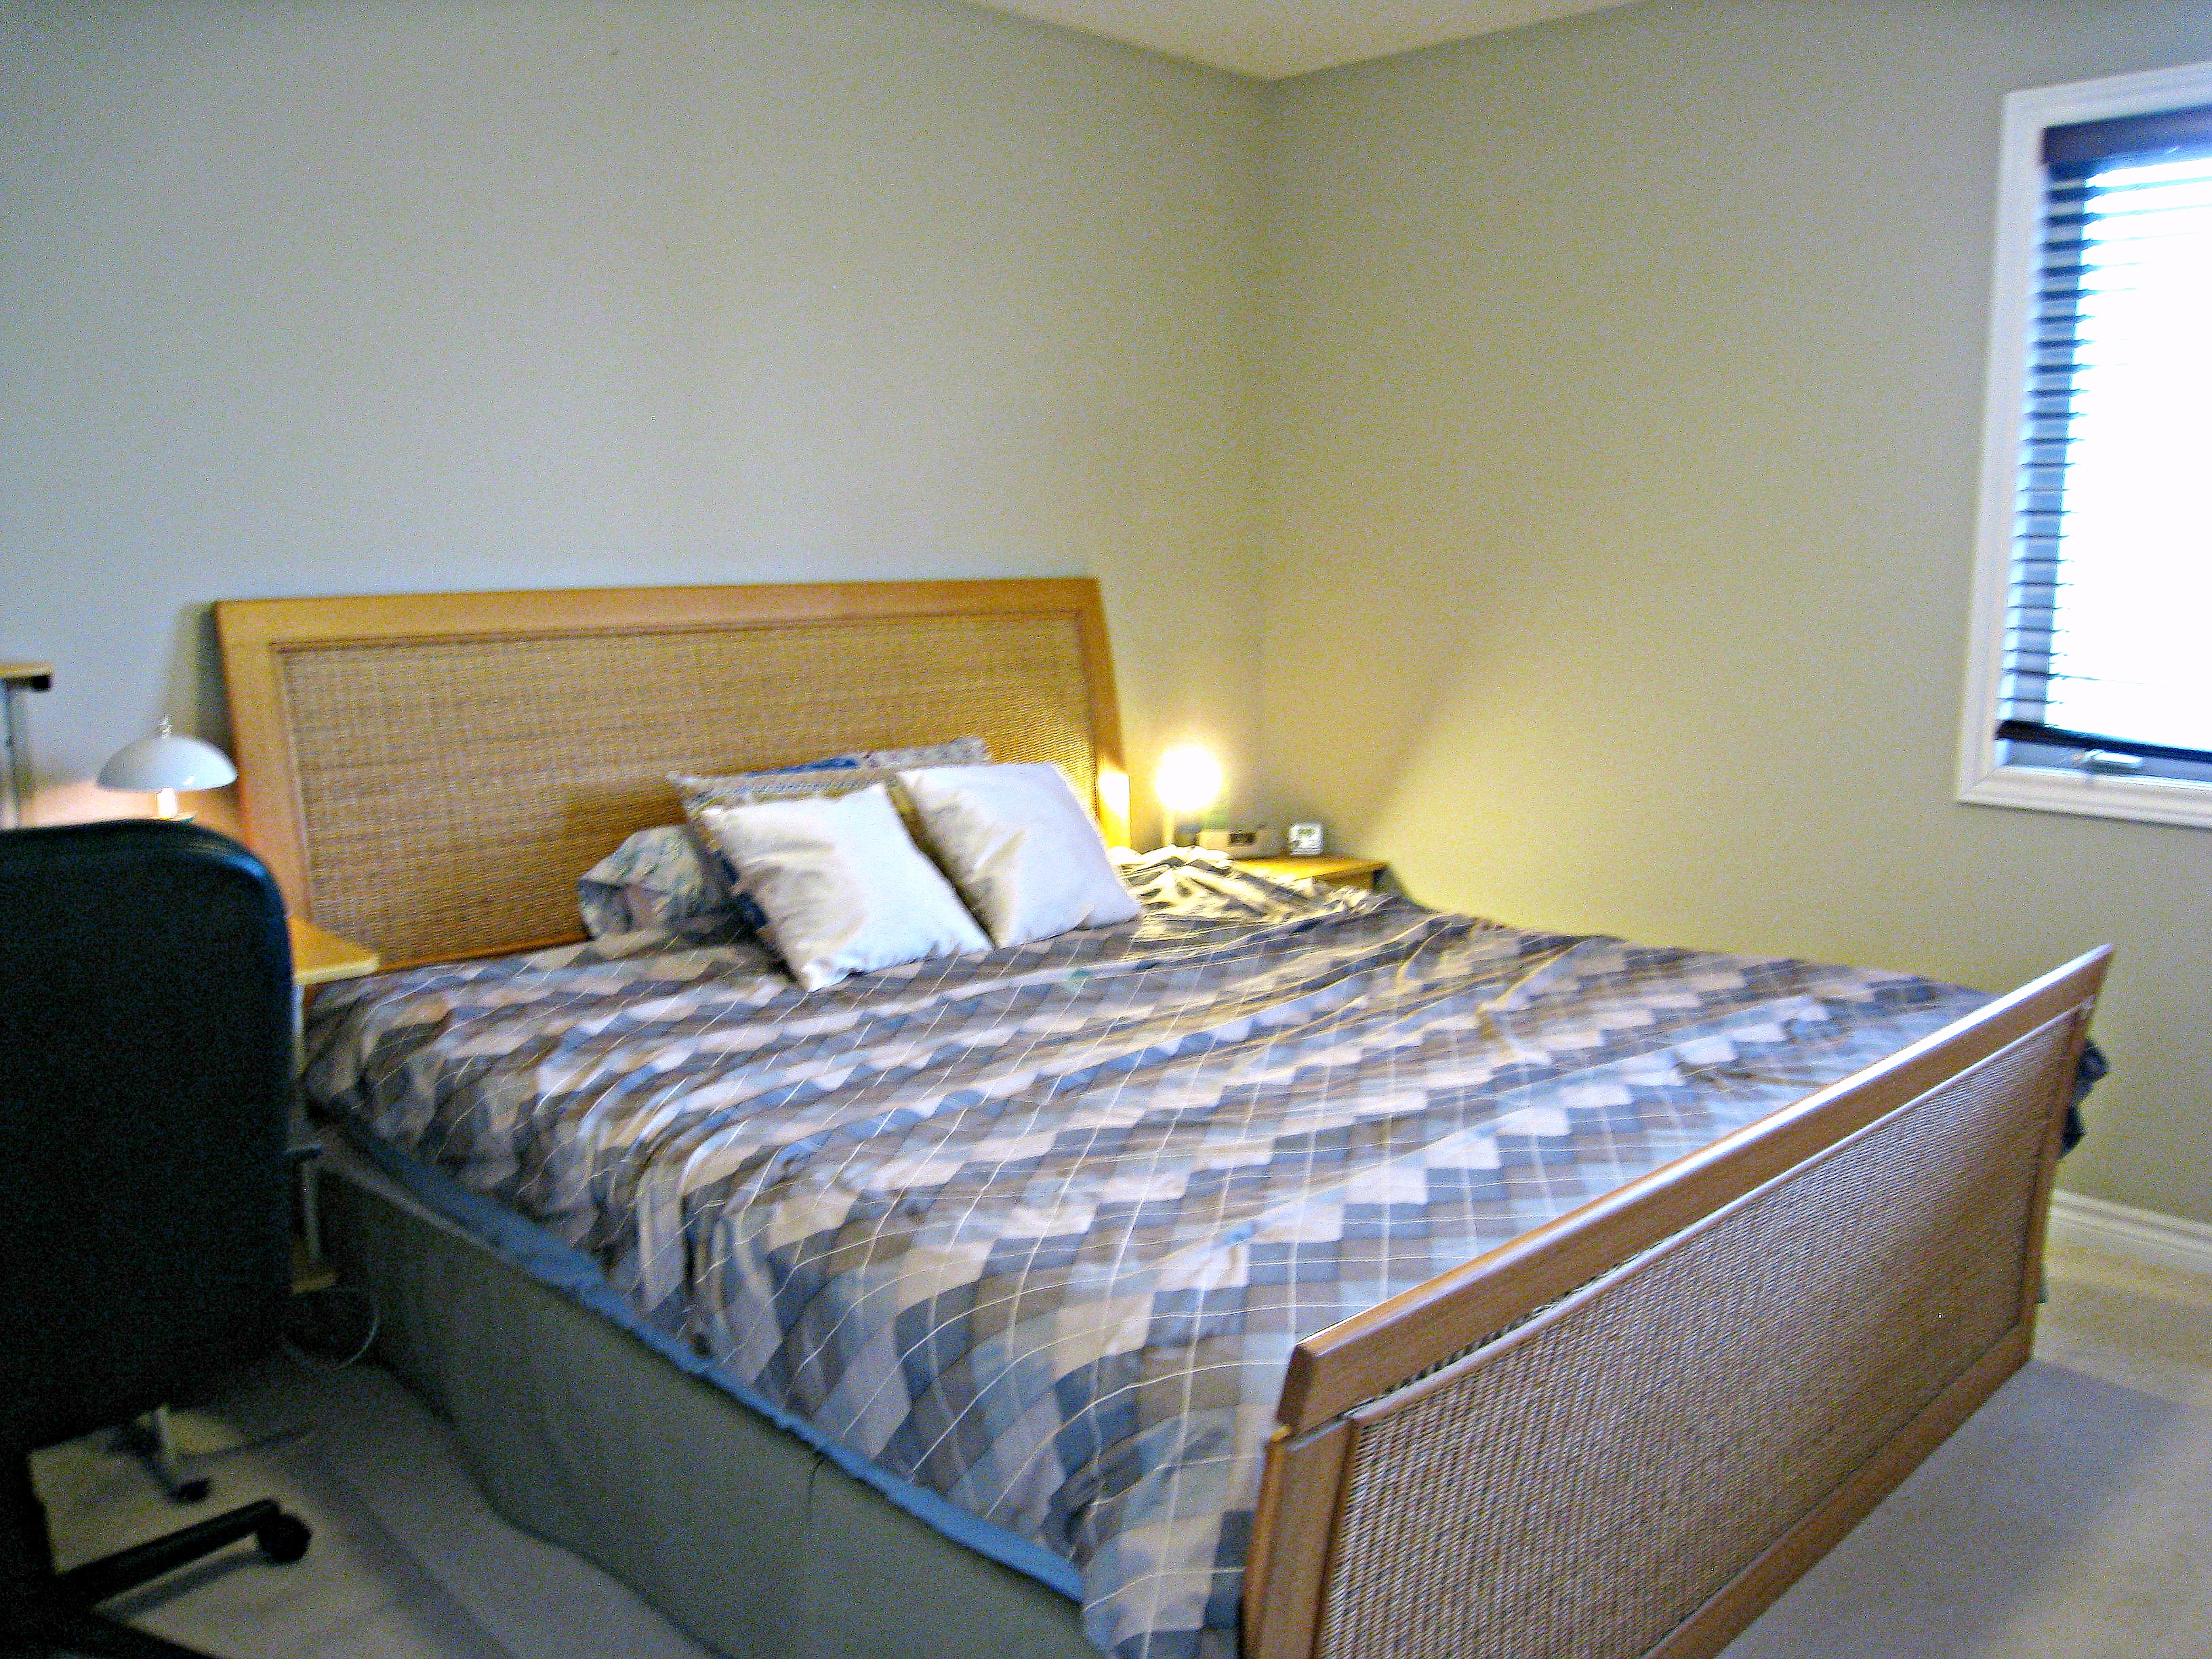 Bedroom 2 - King-size bed